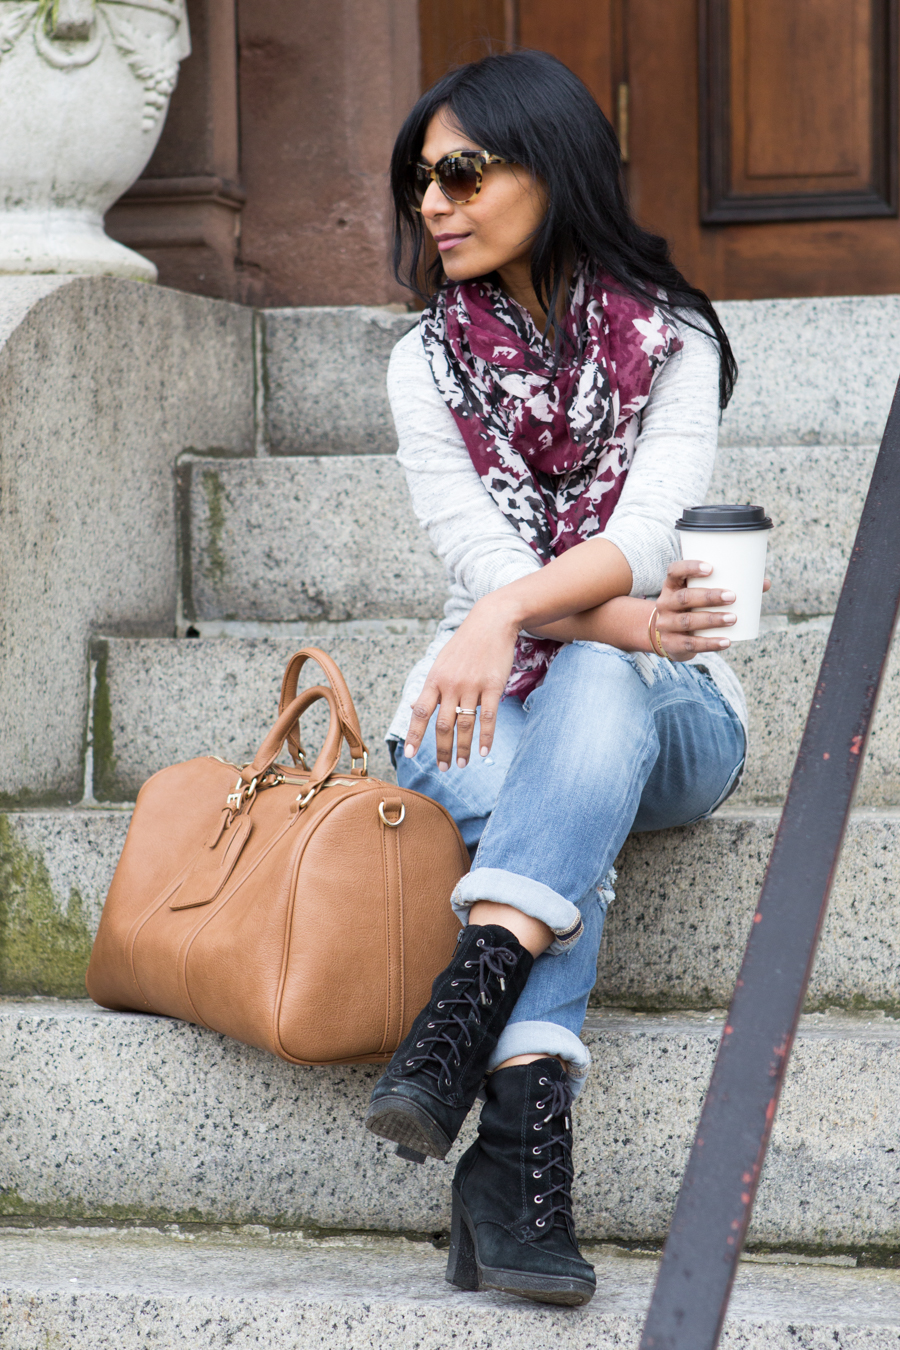 ripped jeans, boyfriend jeans, relaxed jeans, blue jeans, distressed denim, sole society, vegan leather, ankle booties